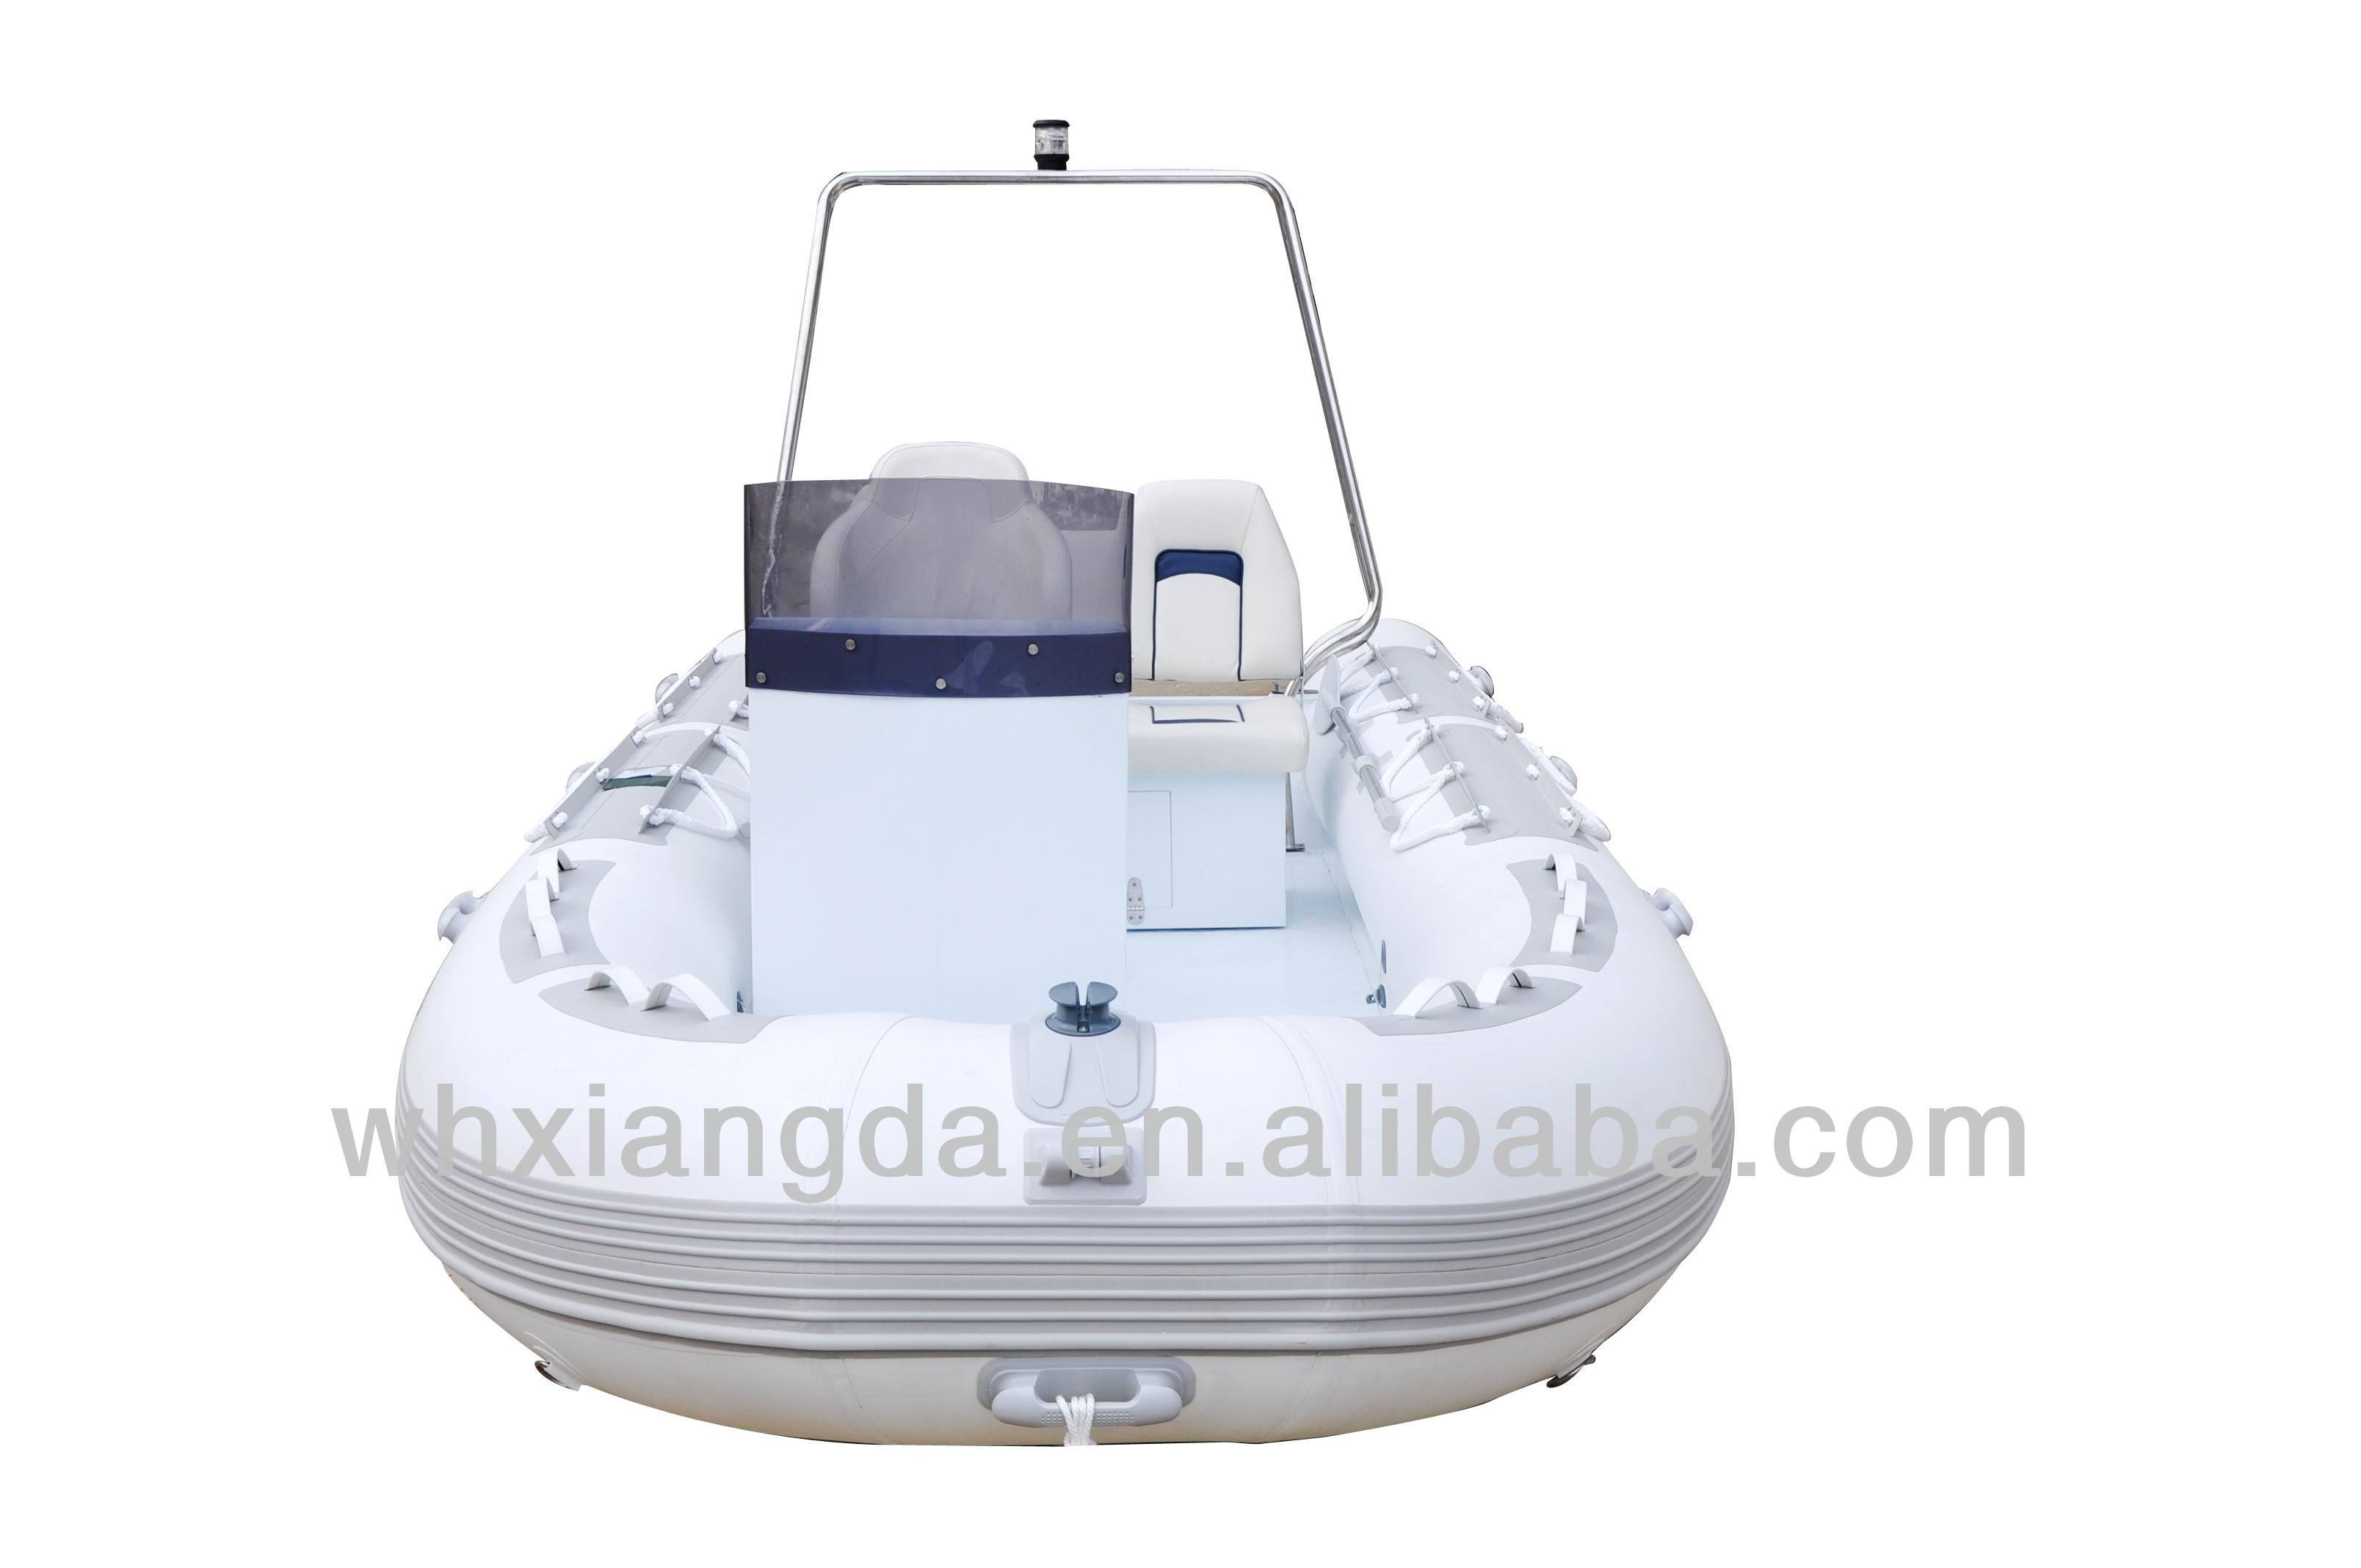 made in turkey boats made in turkey boats suppliers and